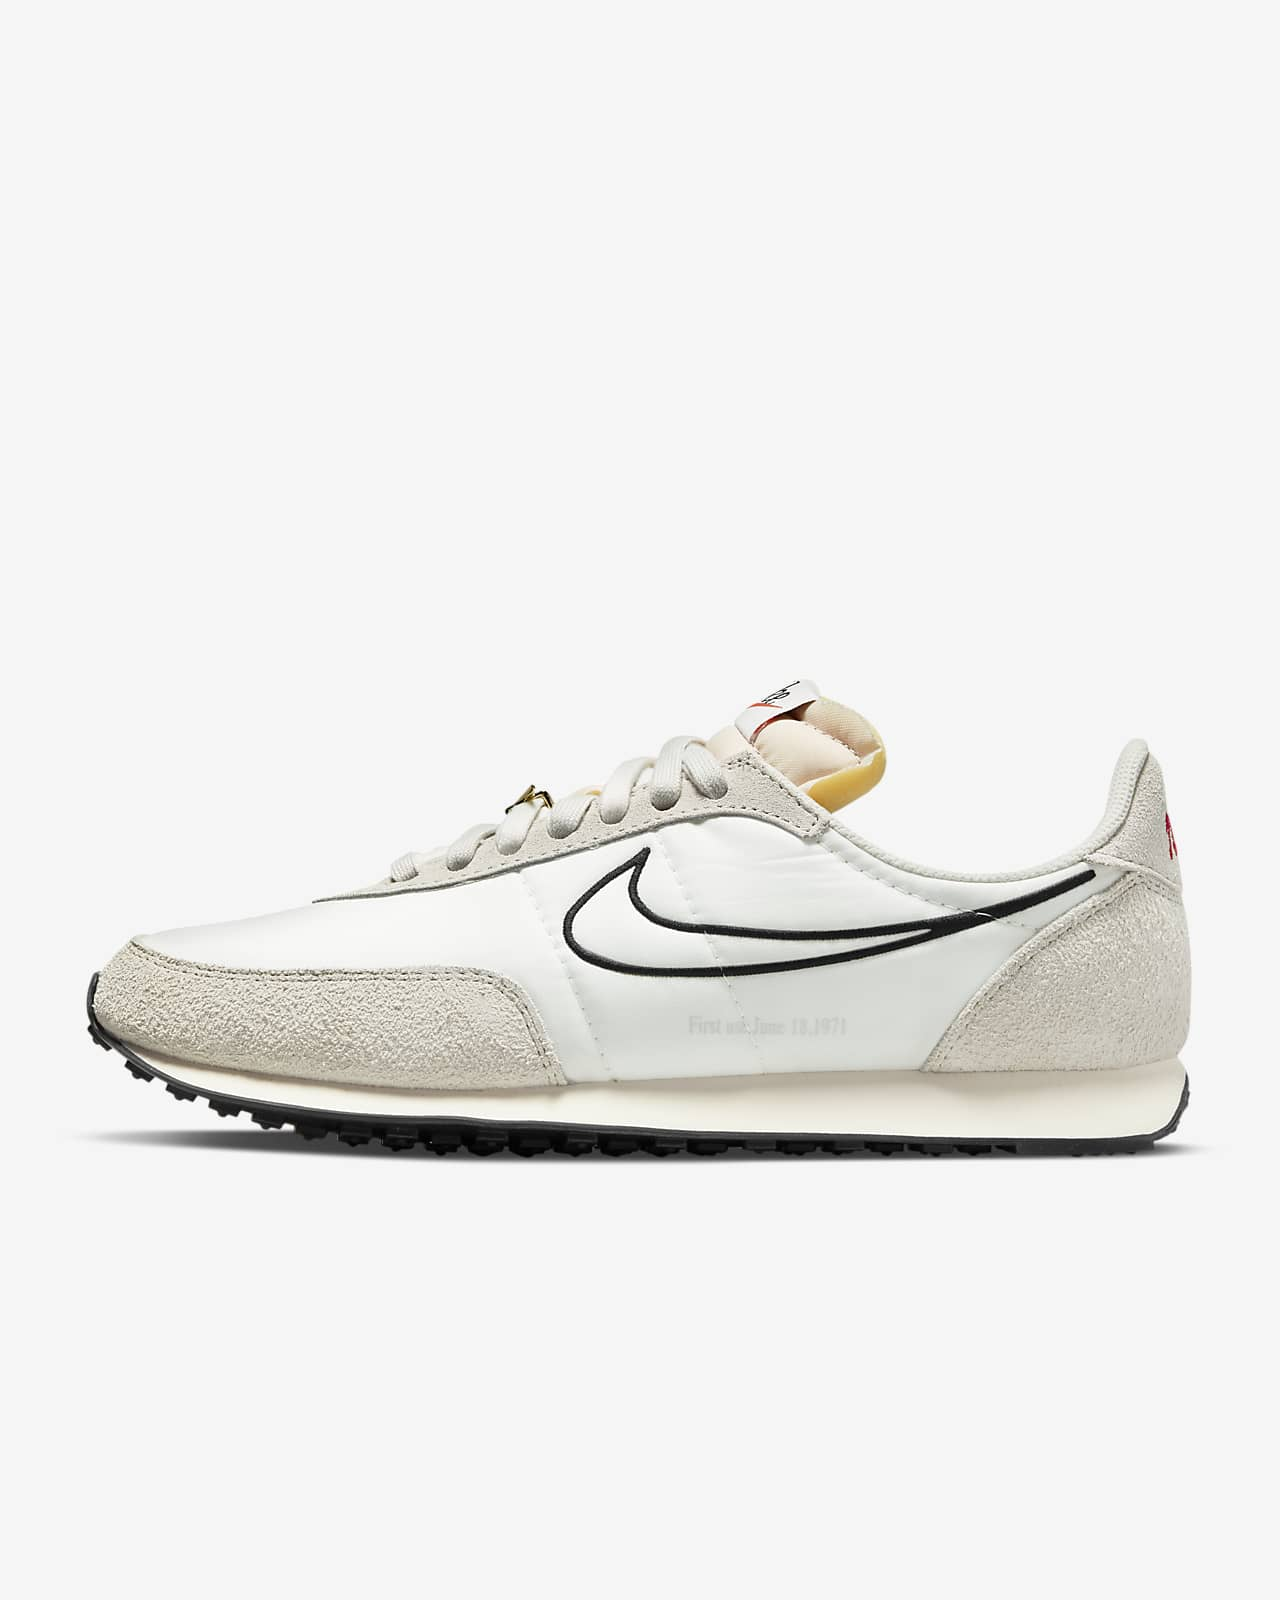 Nike Waffle Trainer 2 Men's Shoes